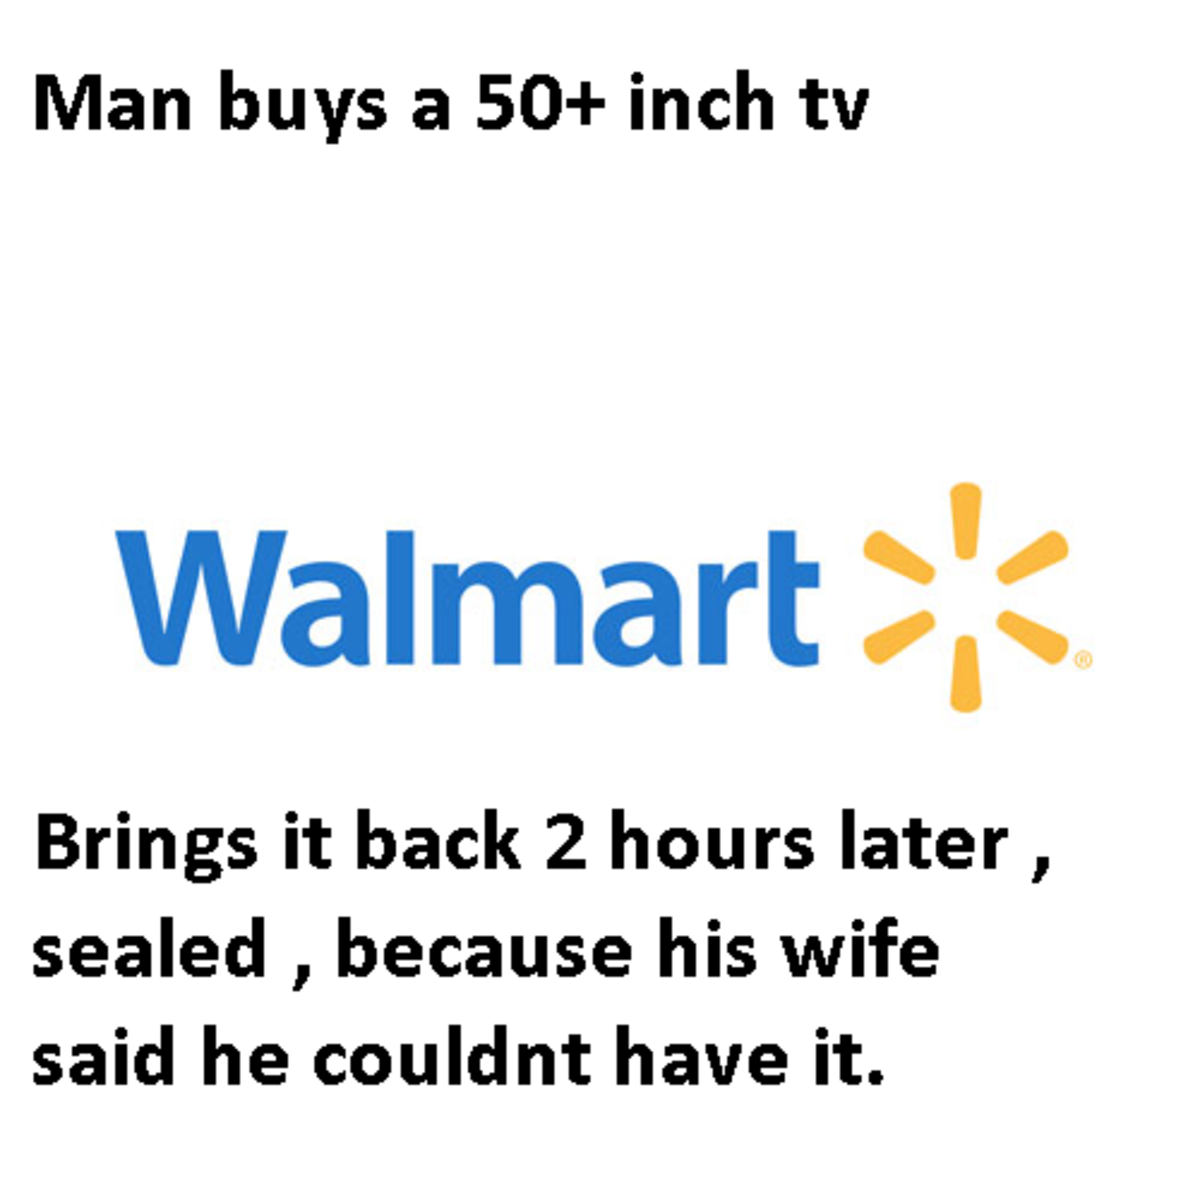 Working at Walmart ( not me ). . Man buys a inch tar Brings it back 2 hours later , sealed , because his wife said he couldnt have it.. I mean, putting this out there like that is going to make them feel even worse about themselves. Pity them in private, don't shame them in public. And at least